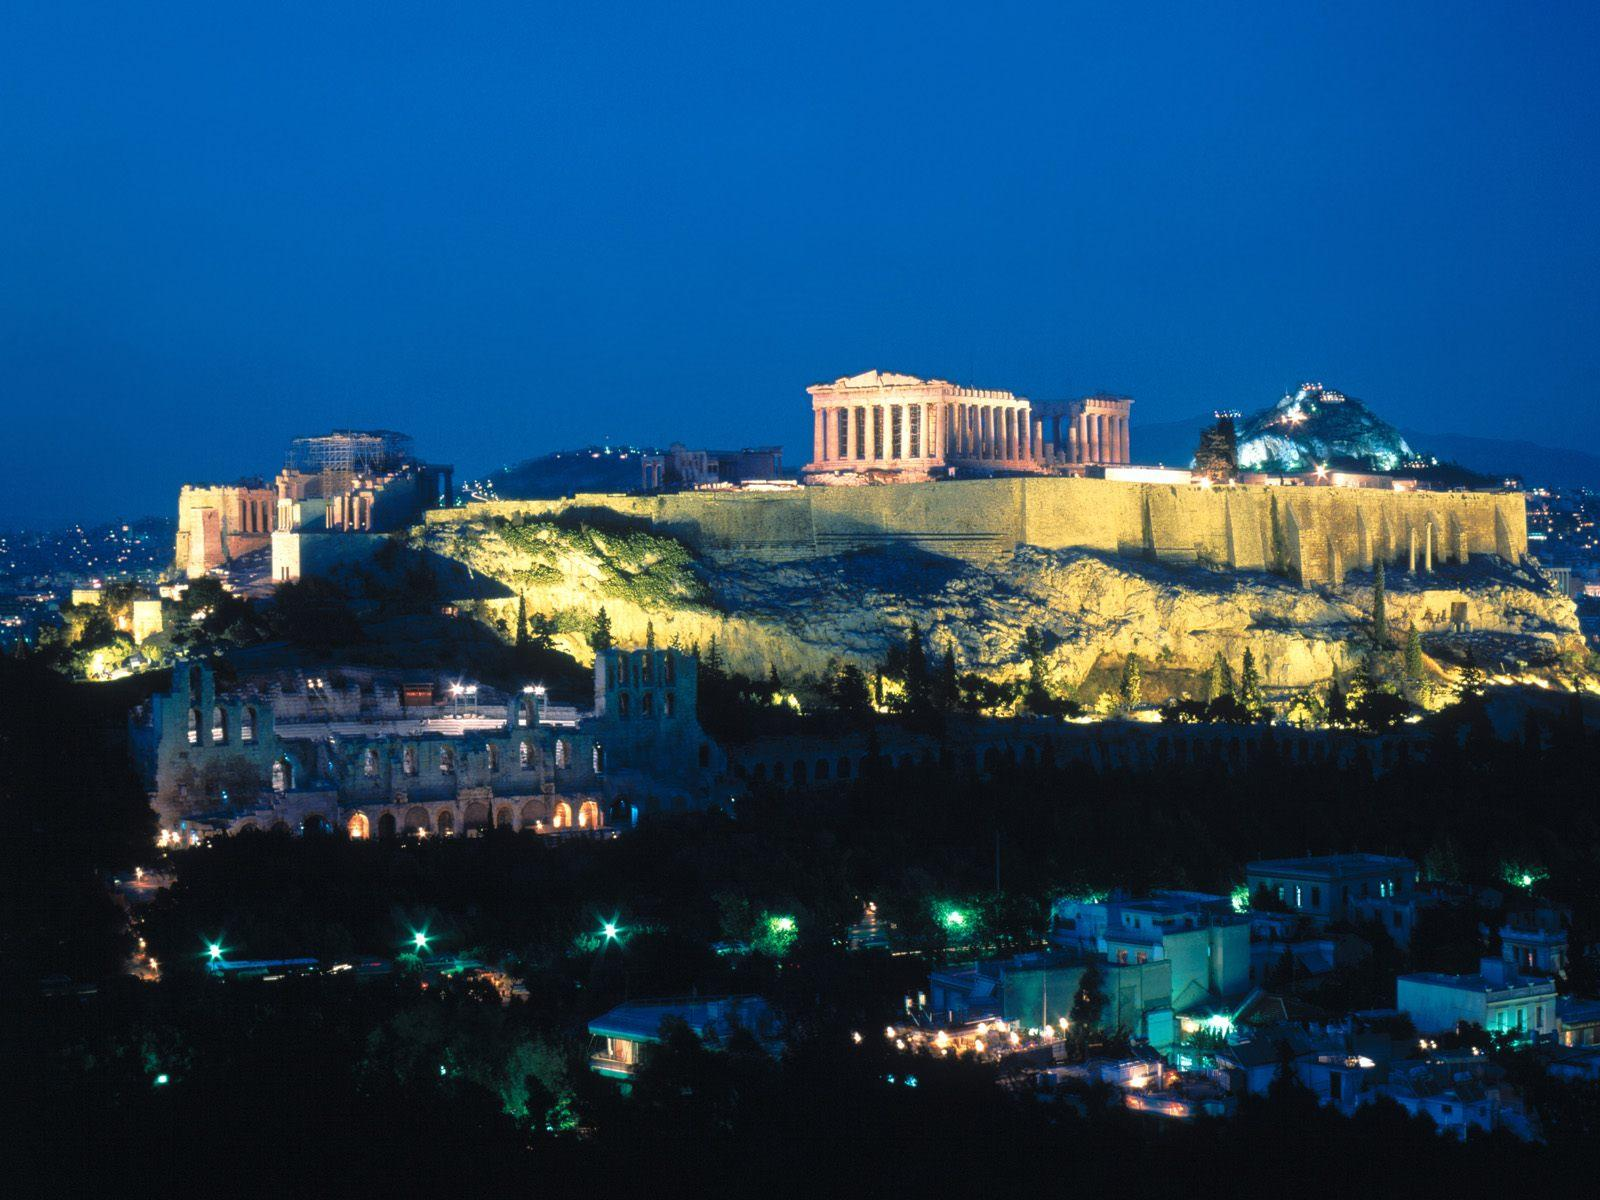 Acropolis Of athens Greece Wallpaper – Travel HD Wallpapers